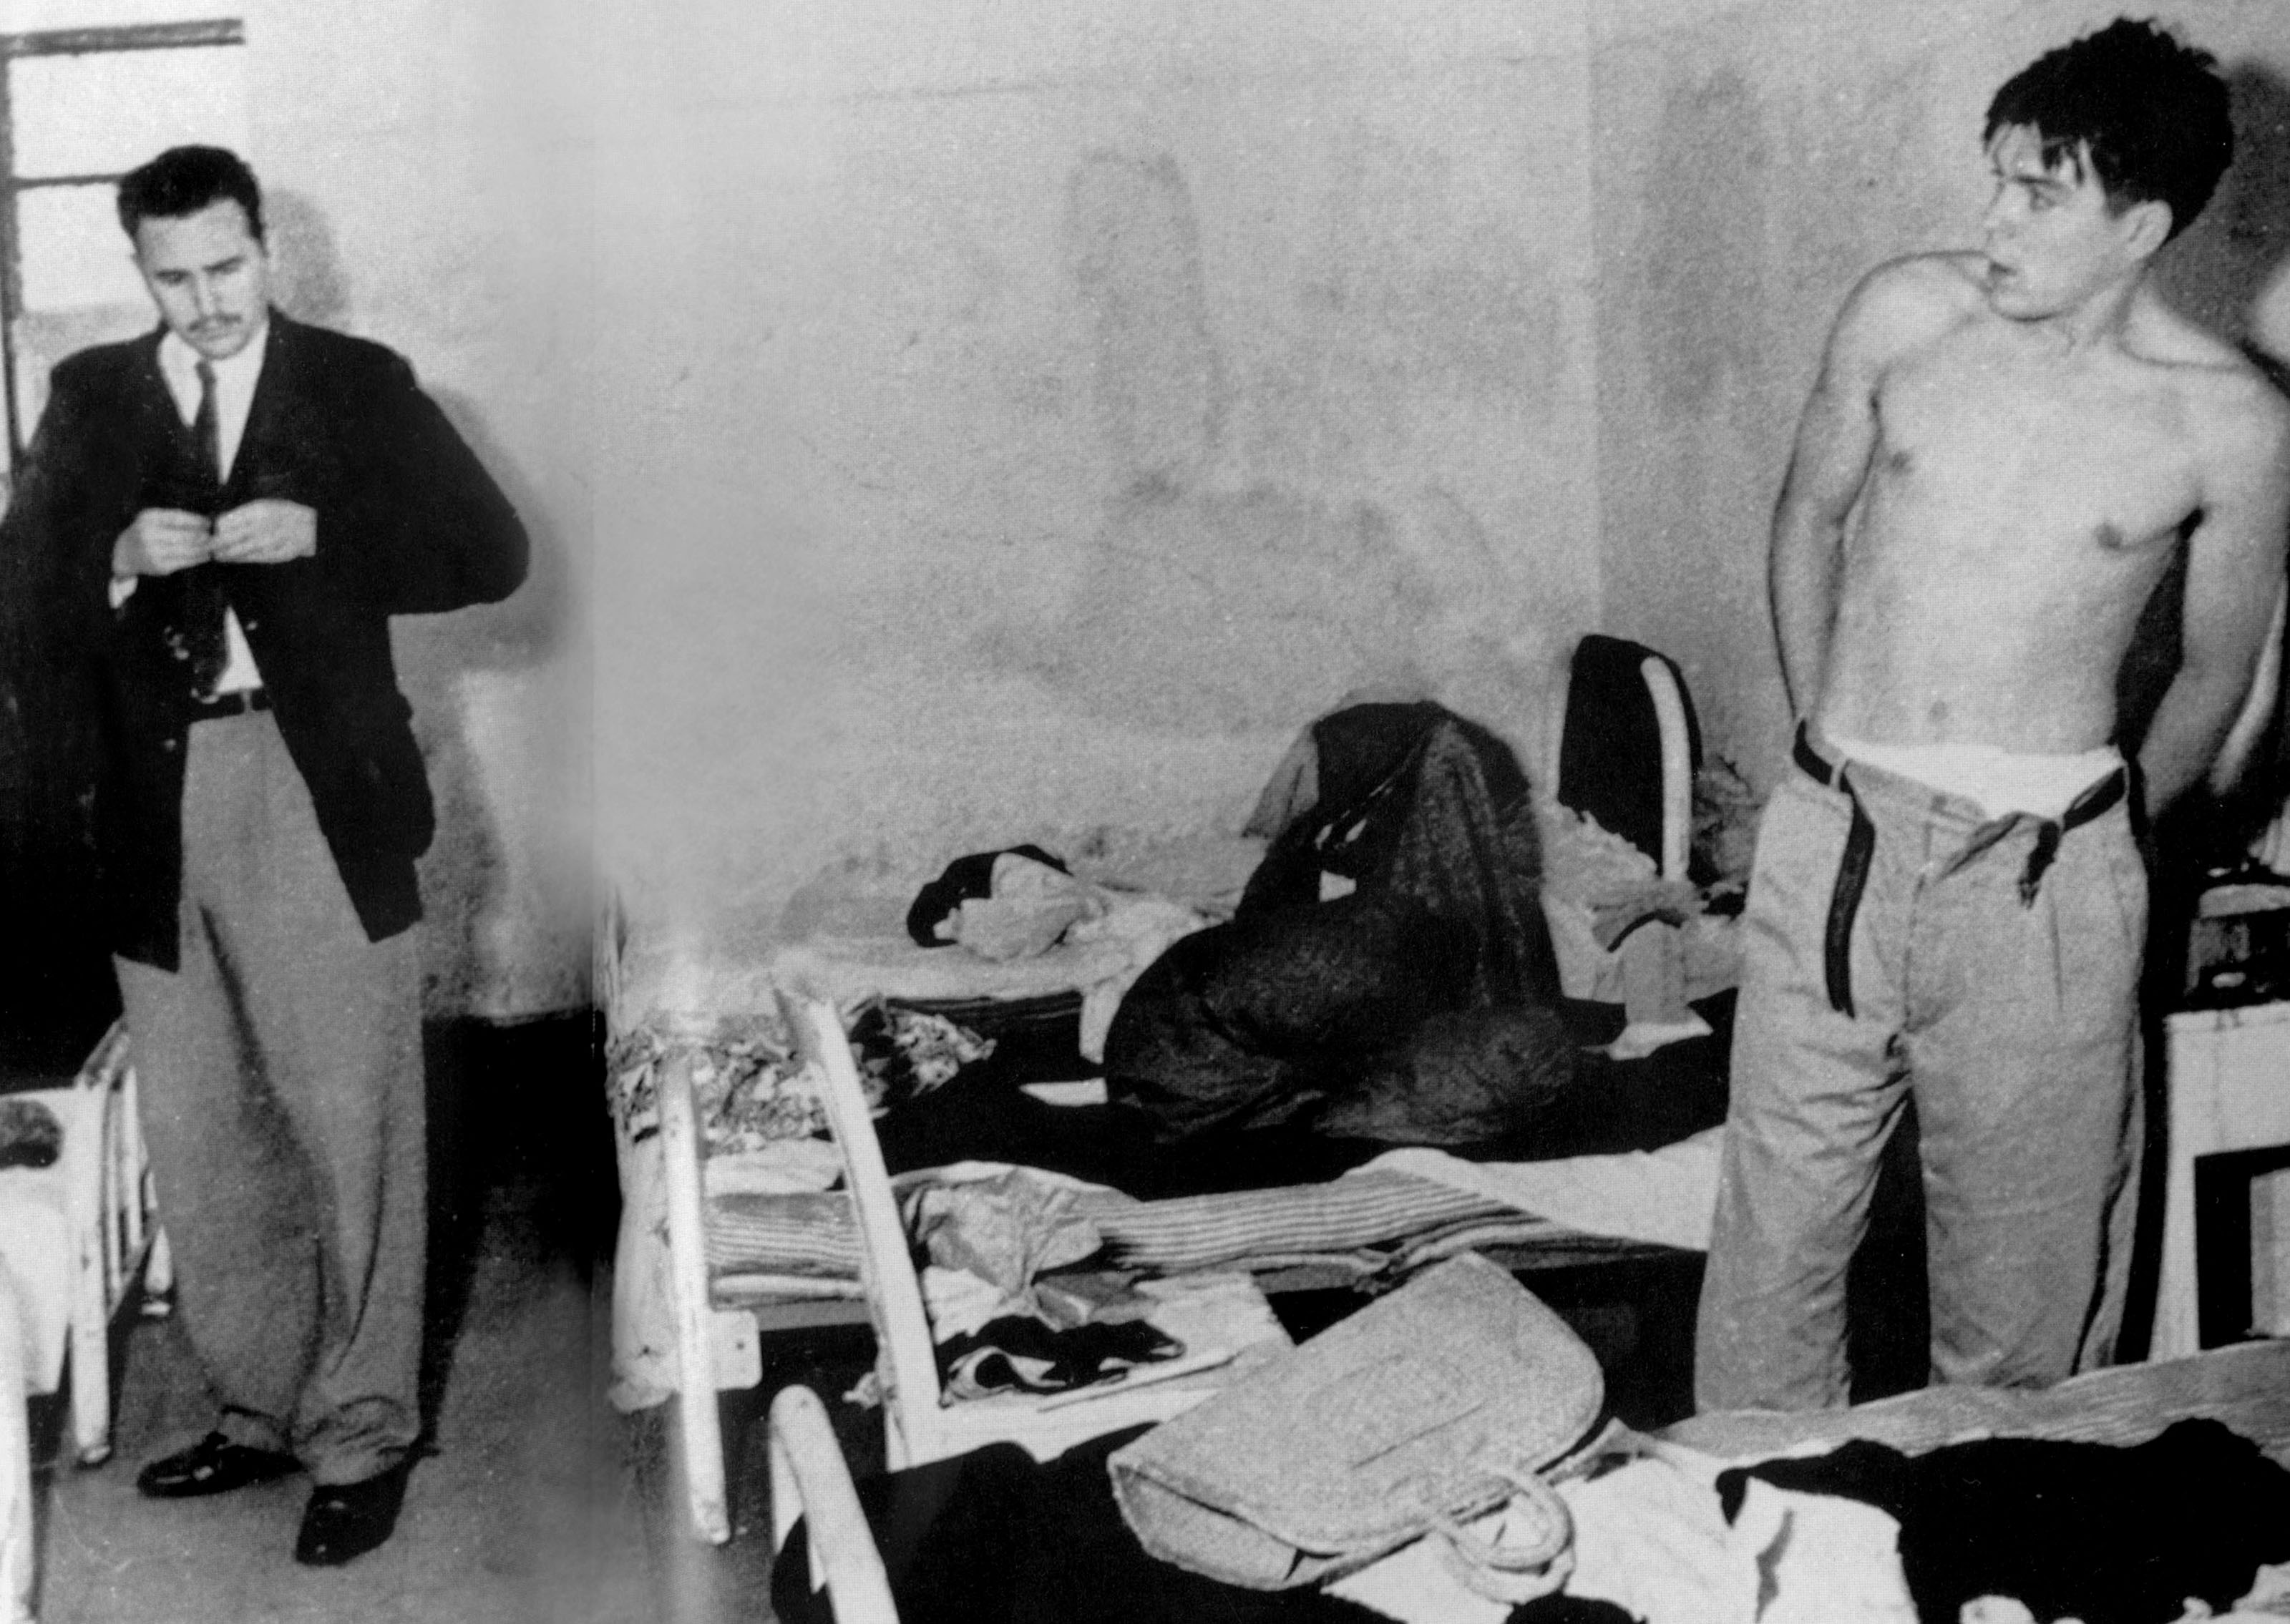 Circa June-July 1956: (From left) Fidel Castro and Ernesto Che Guevara in the Miguel Schultz jail in Mexico City. This may be the first photo showing Castro and Guevara together. (Photograph by Apic/Getty Images)